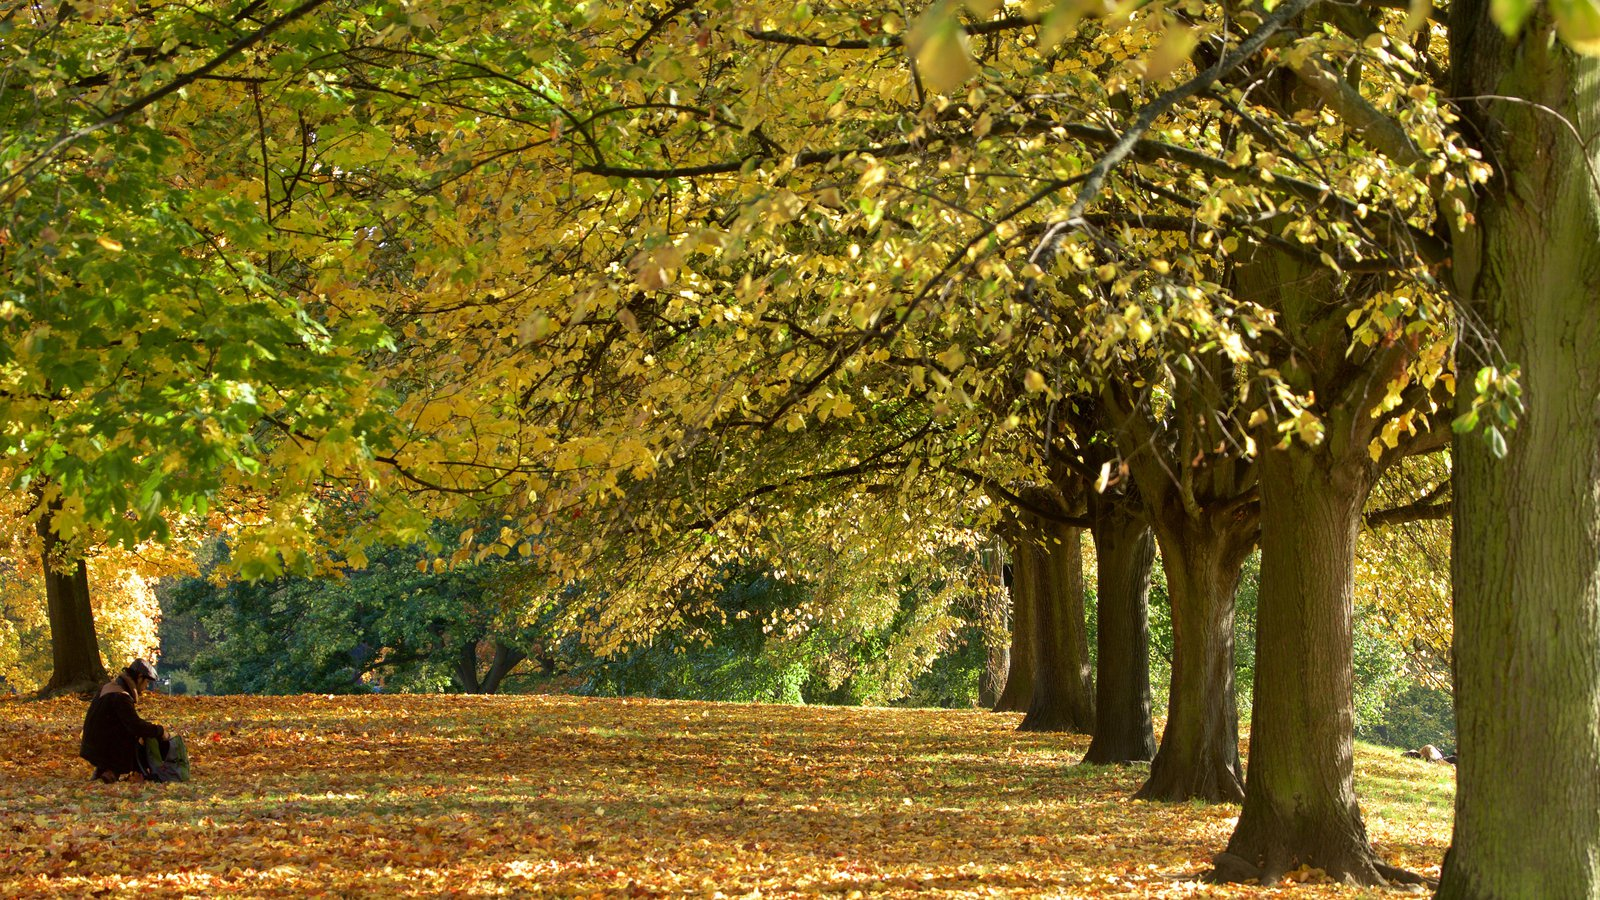 Fall Pictures: View Images of Kensington Gardens